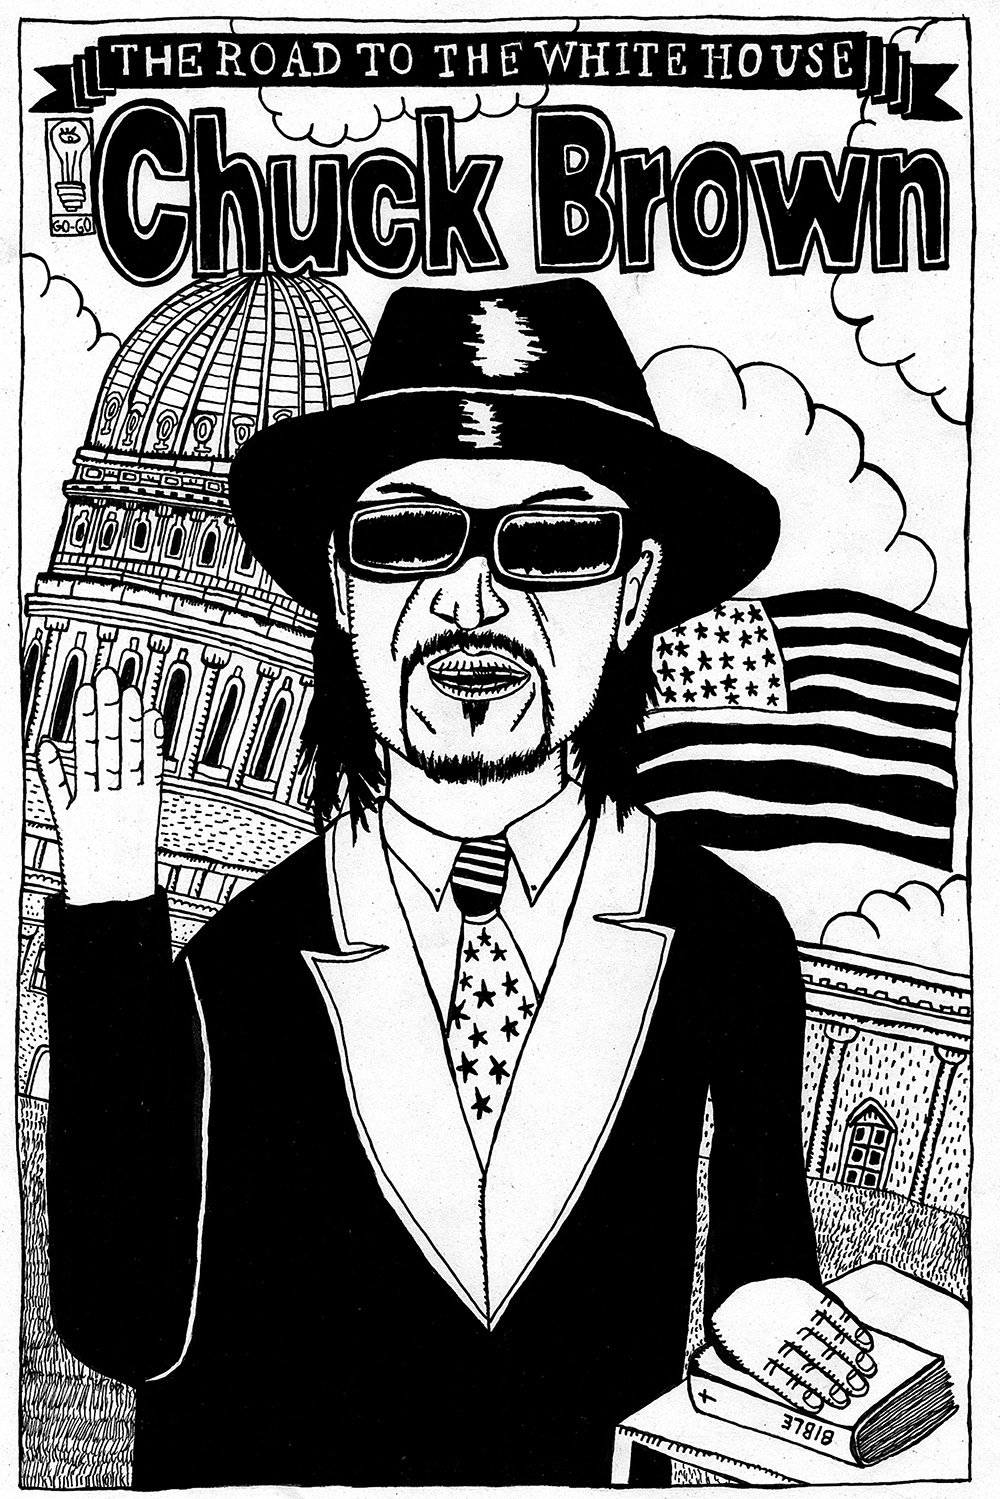 Chuck Brown / Hector de la Vallée